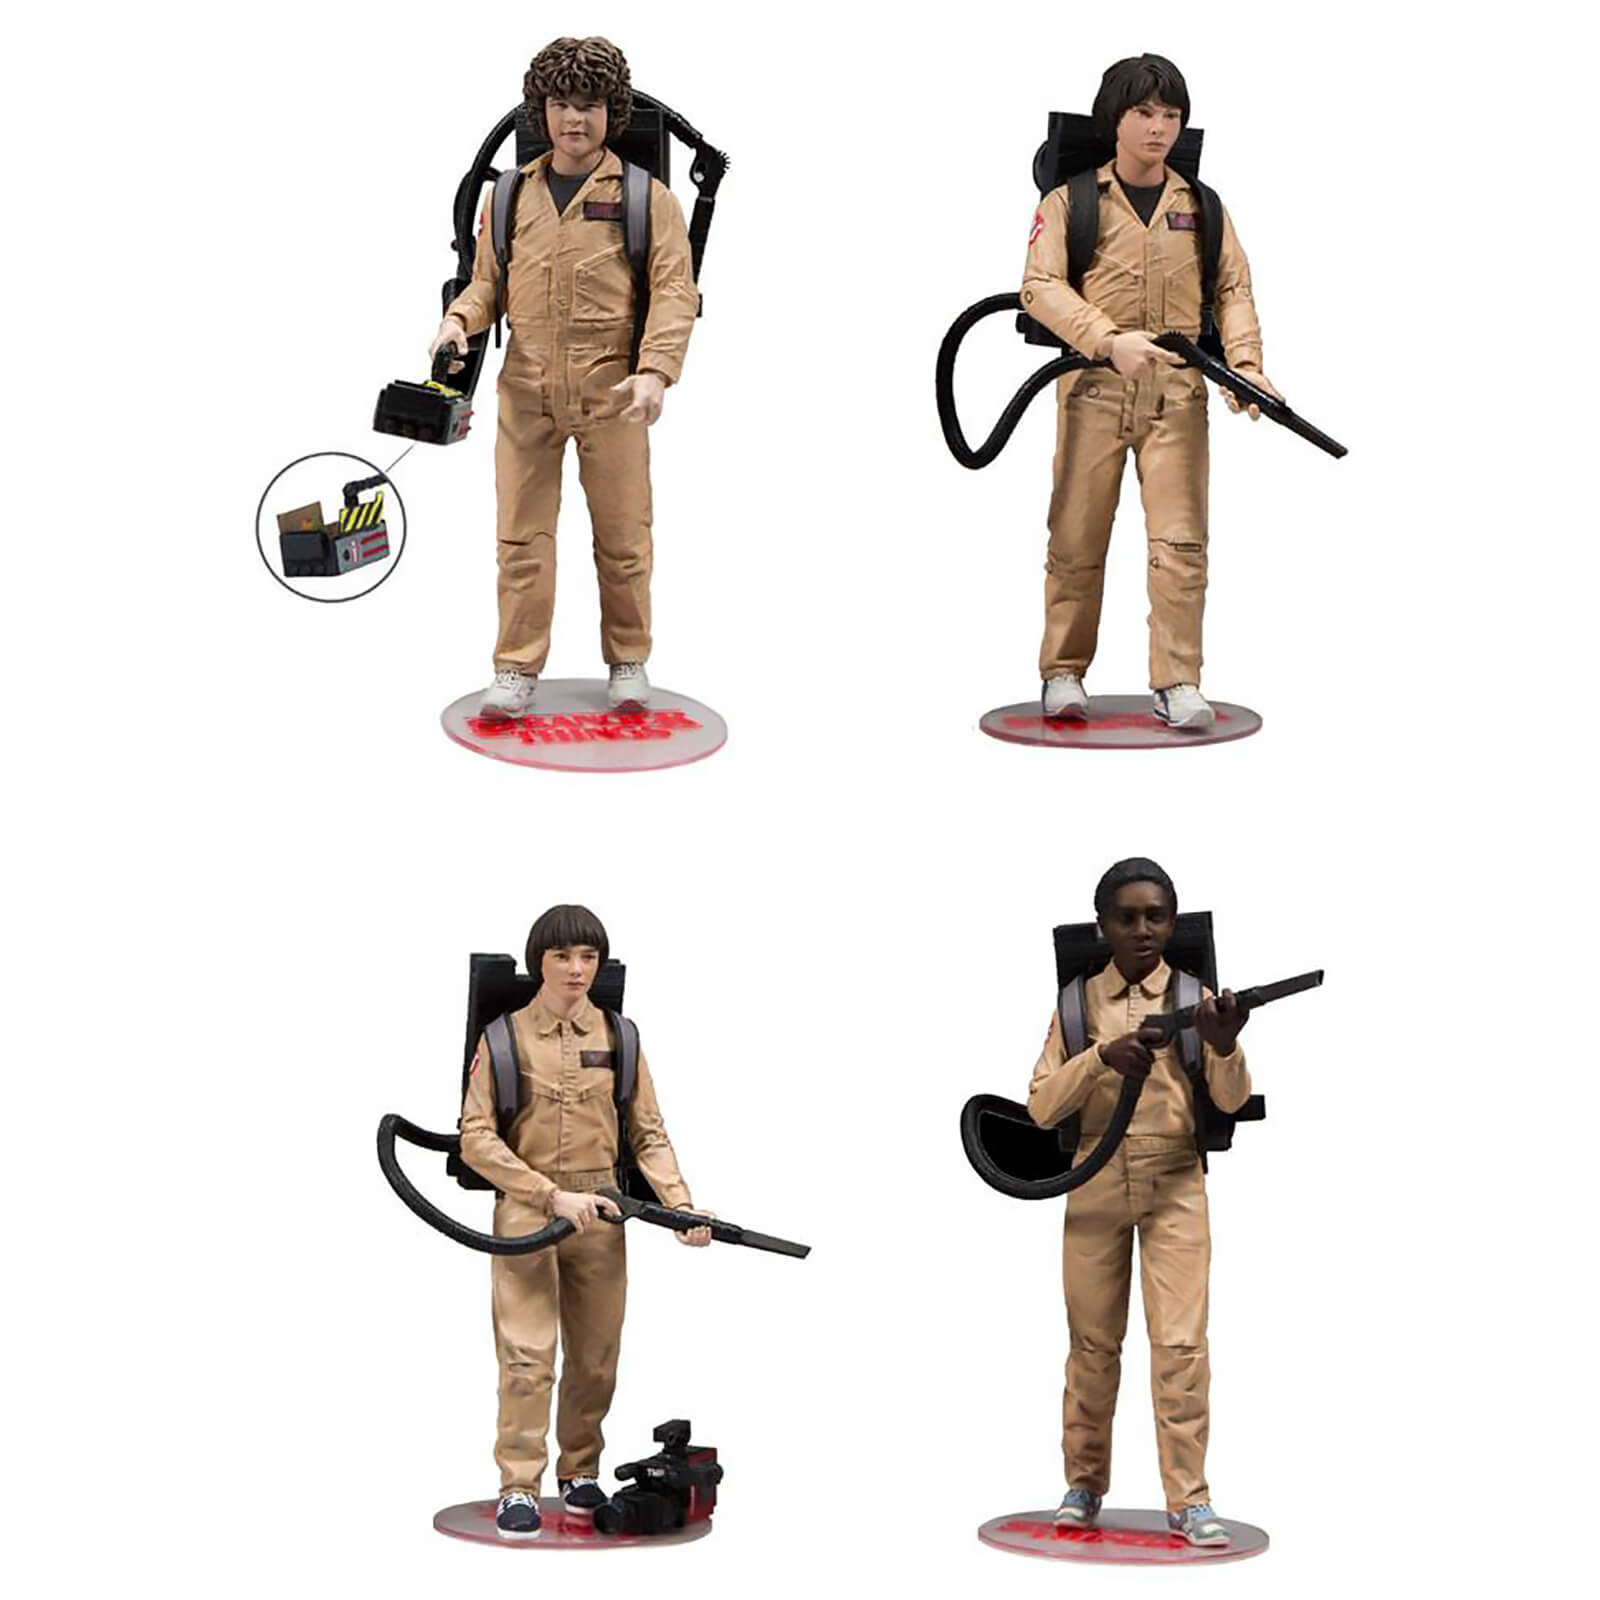 Ghostbusters Bettwäsche Mcfarlane Stranger Things Ghostbuster Deluxe 4 Pack